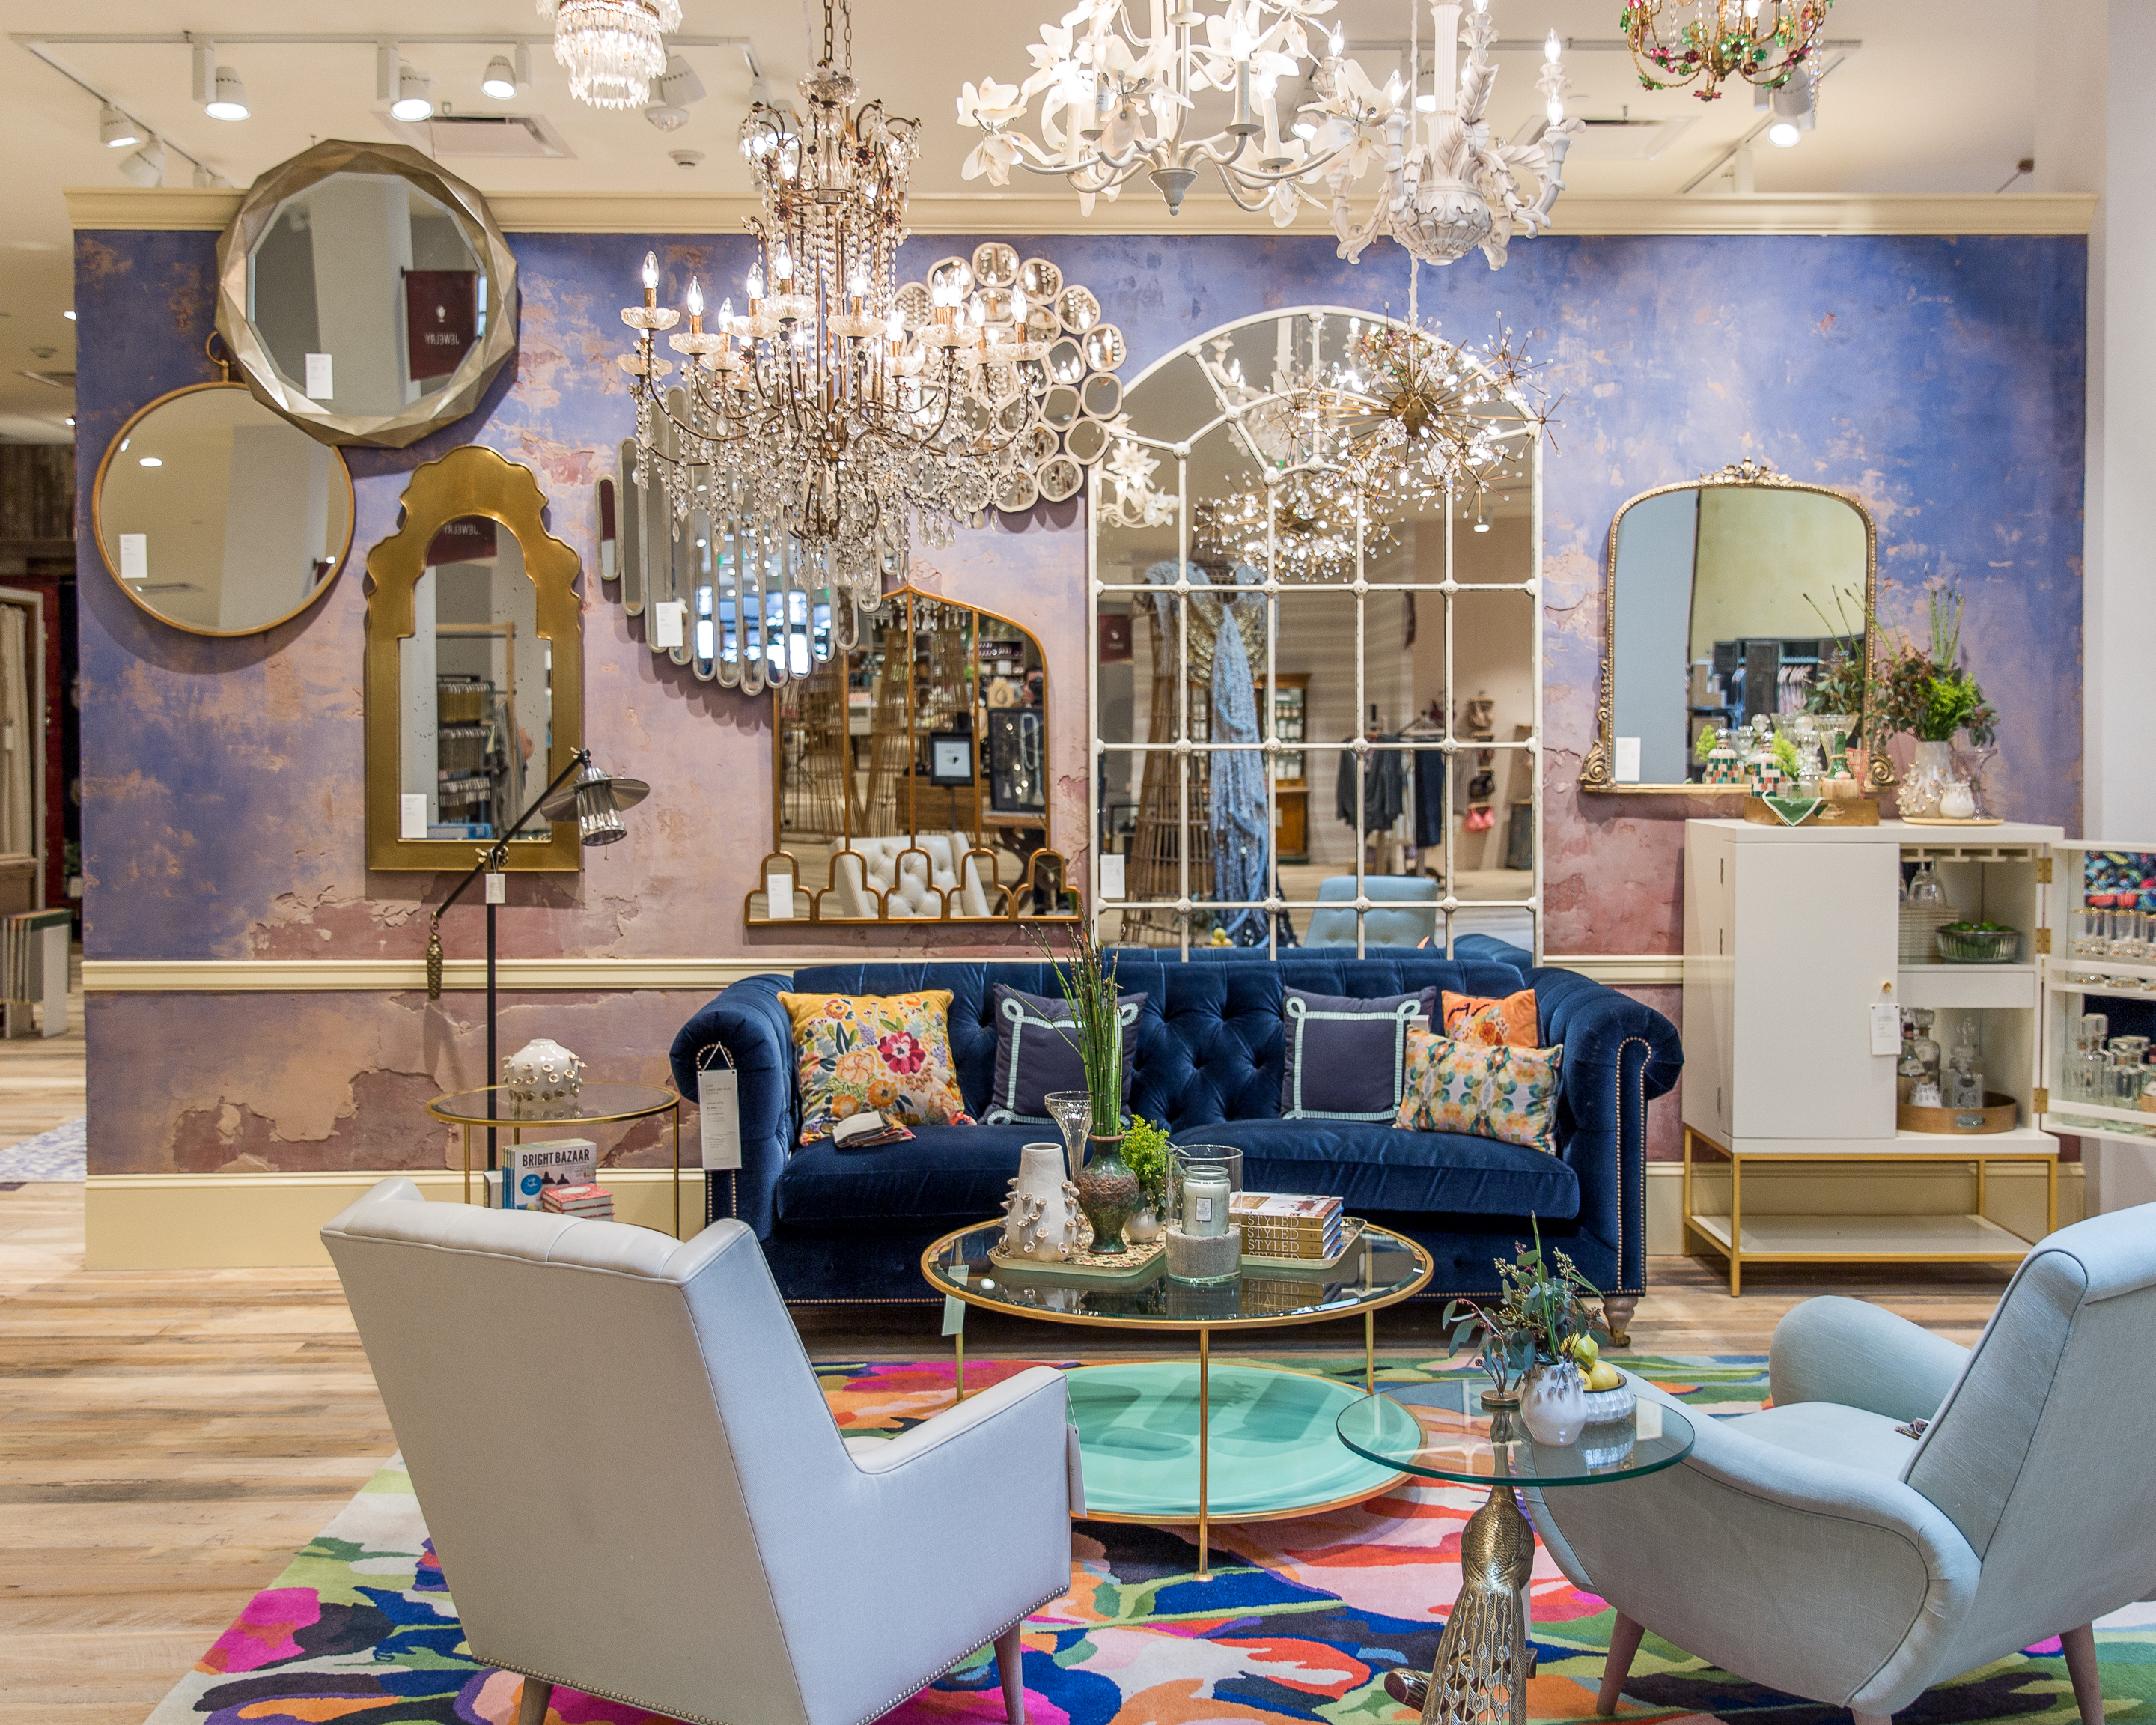 Anthropologie's Upgraded Newport Beach Store Offers Major